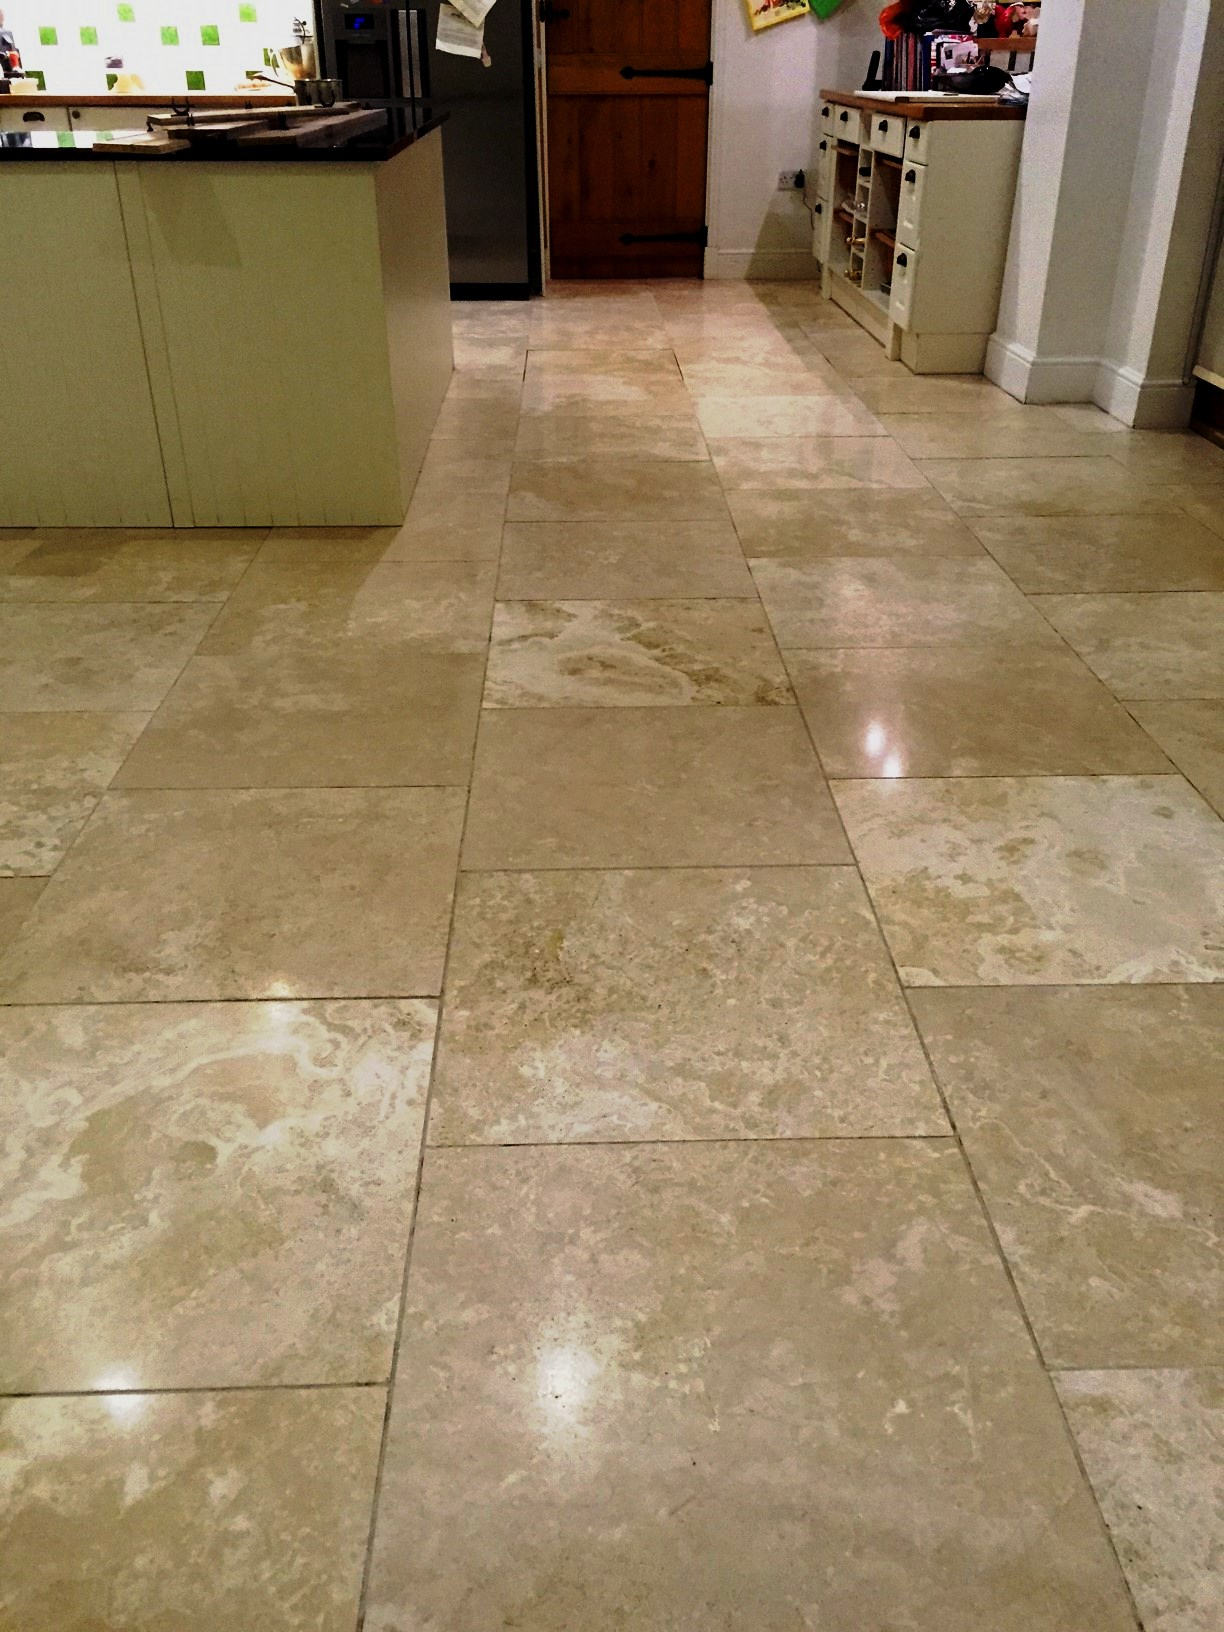 Cleaning And Polishing Travertine Floor Tiles